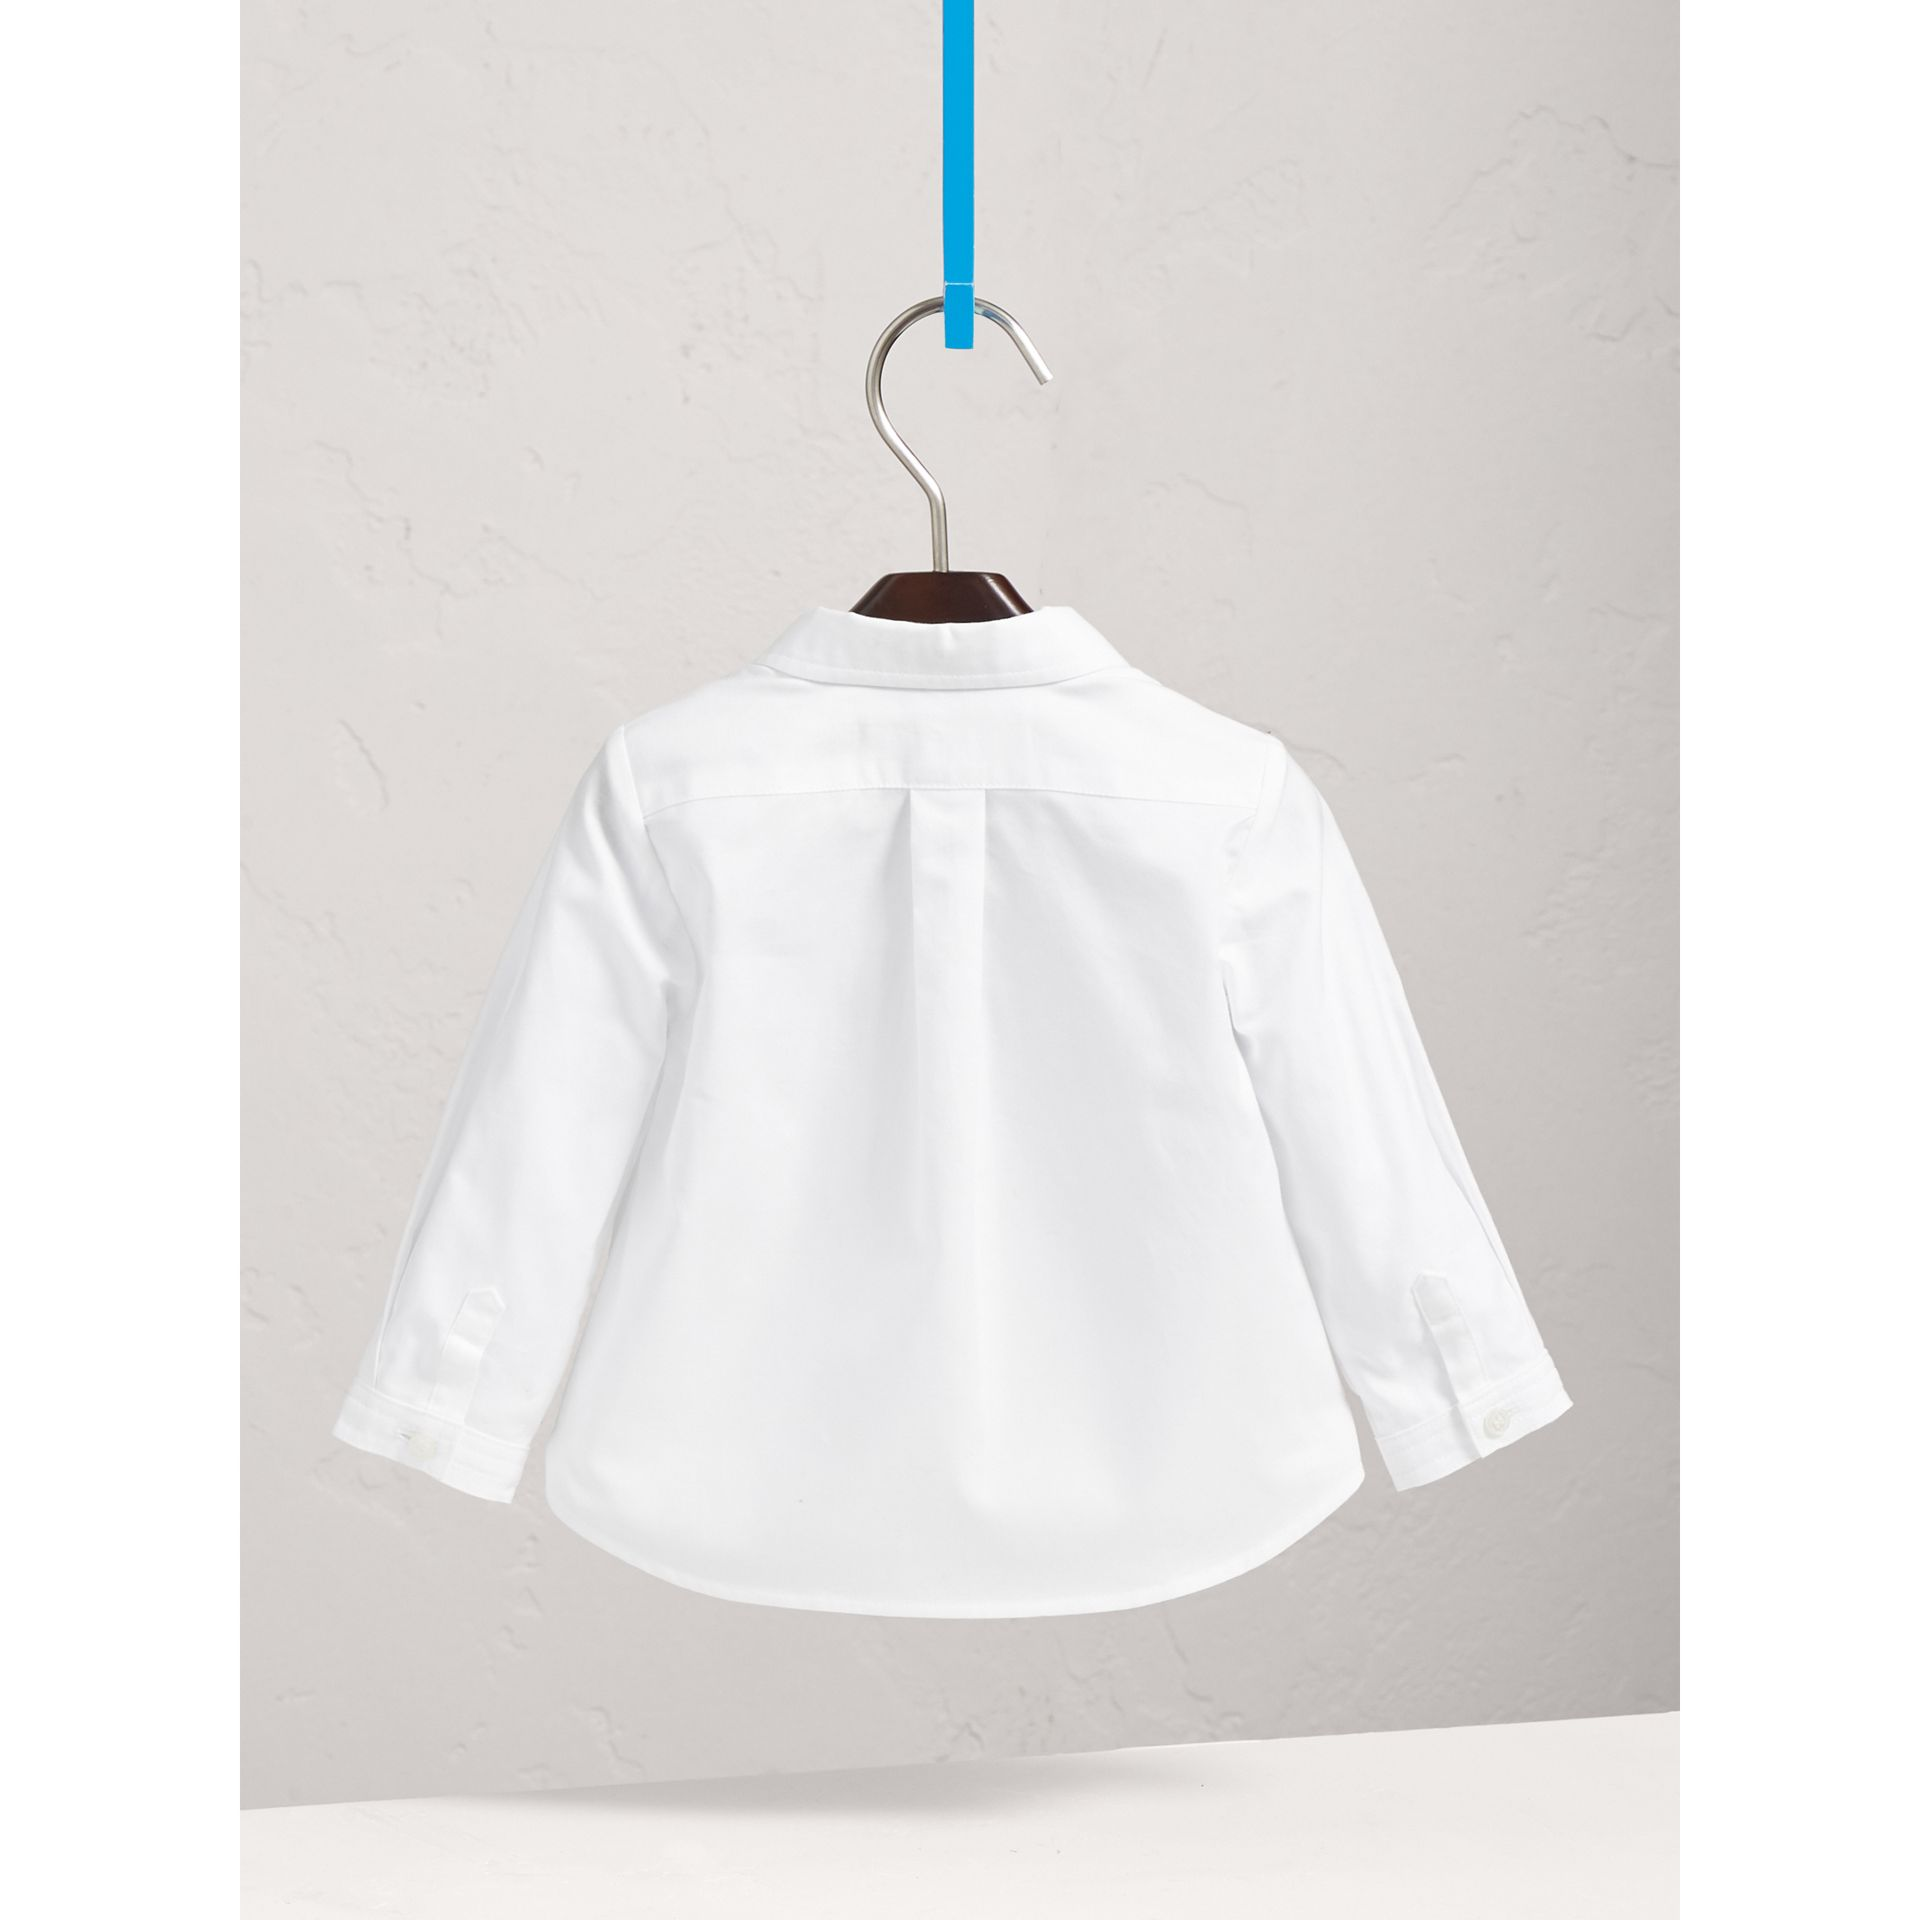 London Icons Cotton Oxford Shirt in White | Burberry - gallery image 4